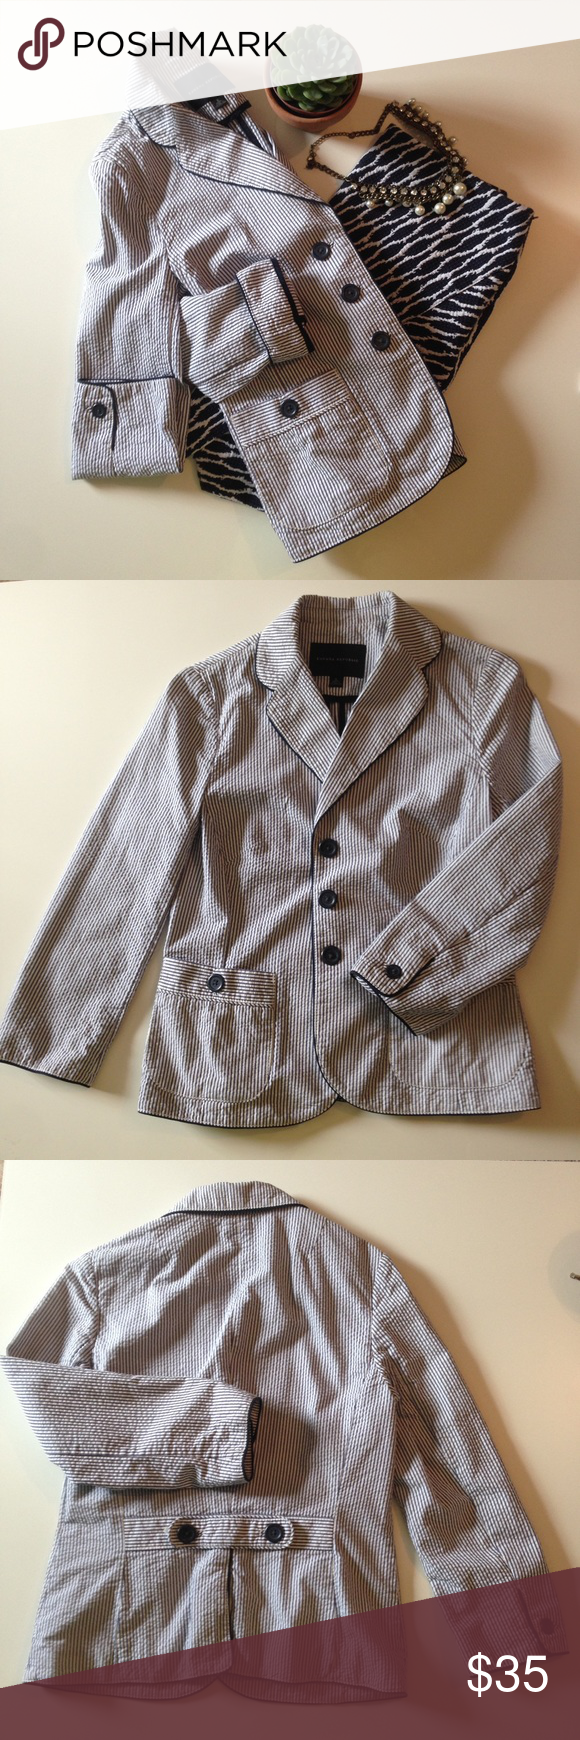 Banana Republic seersucker blazer Classic and stylish navy and white seersucker blazer. 2 pockets in front, 3-button front, button cuffs, button strap in back. Like new. No rips, snags or stains. 100% cotton. Can be machine washed, but I just had it dry cleaned. Adorable with a printed skirt in navy and white, with jeans and leopard print flats, or with white shorts and camel colored sandals. Banana Republic Jackets & Coats Blazers